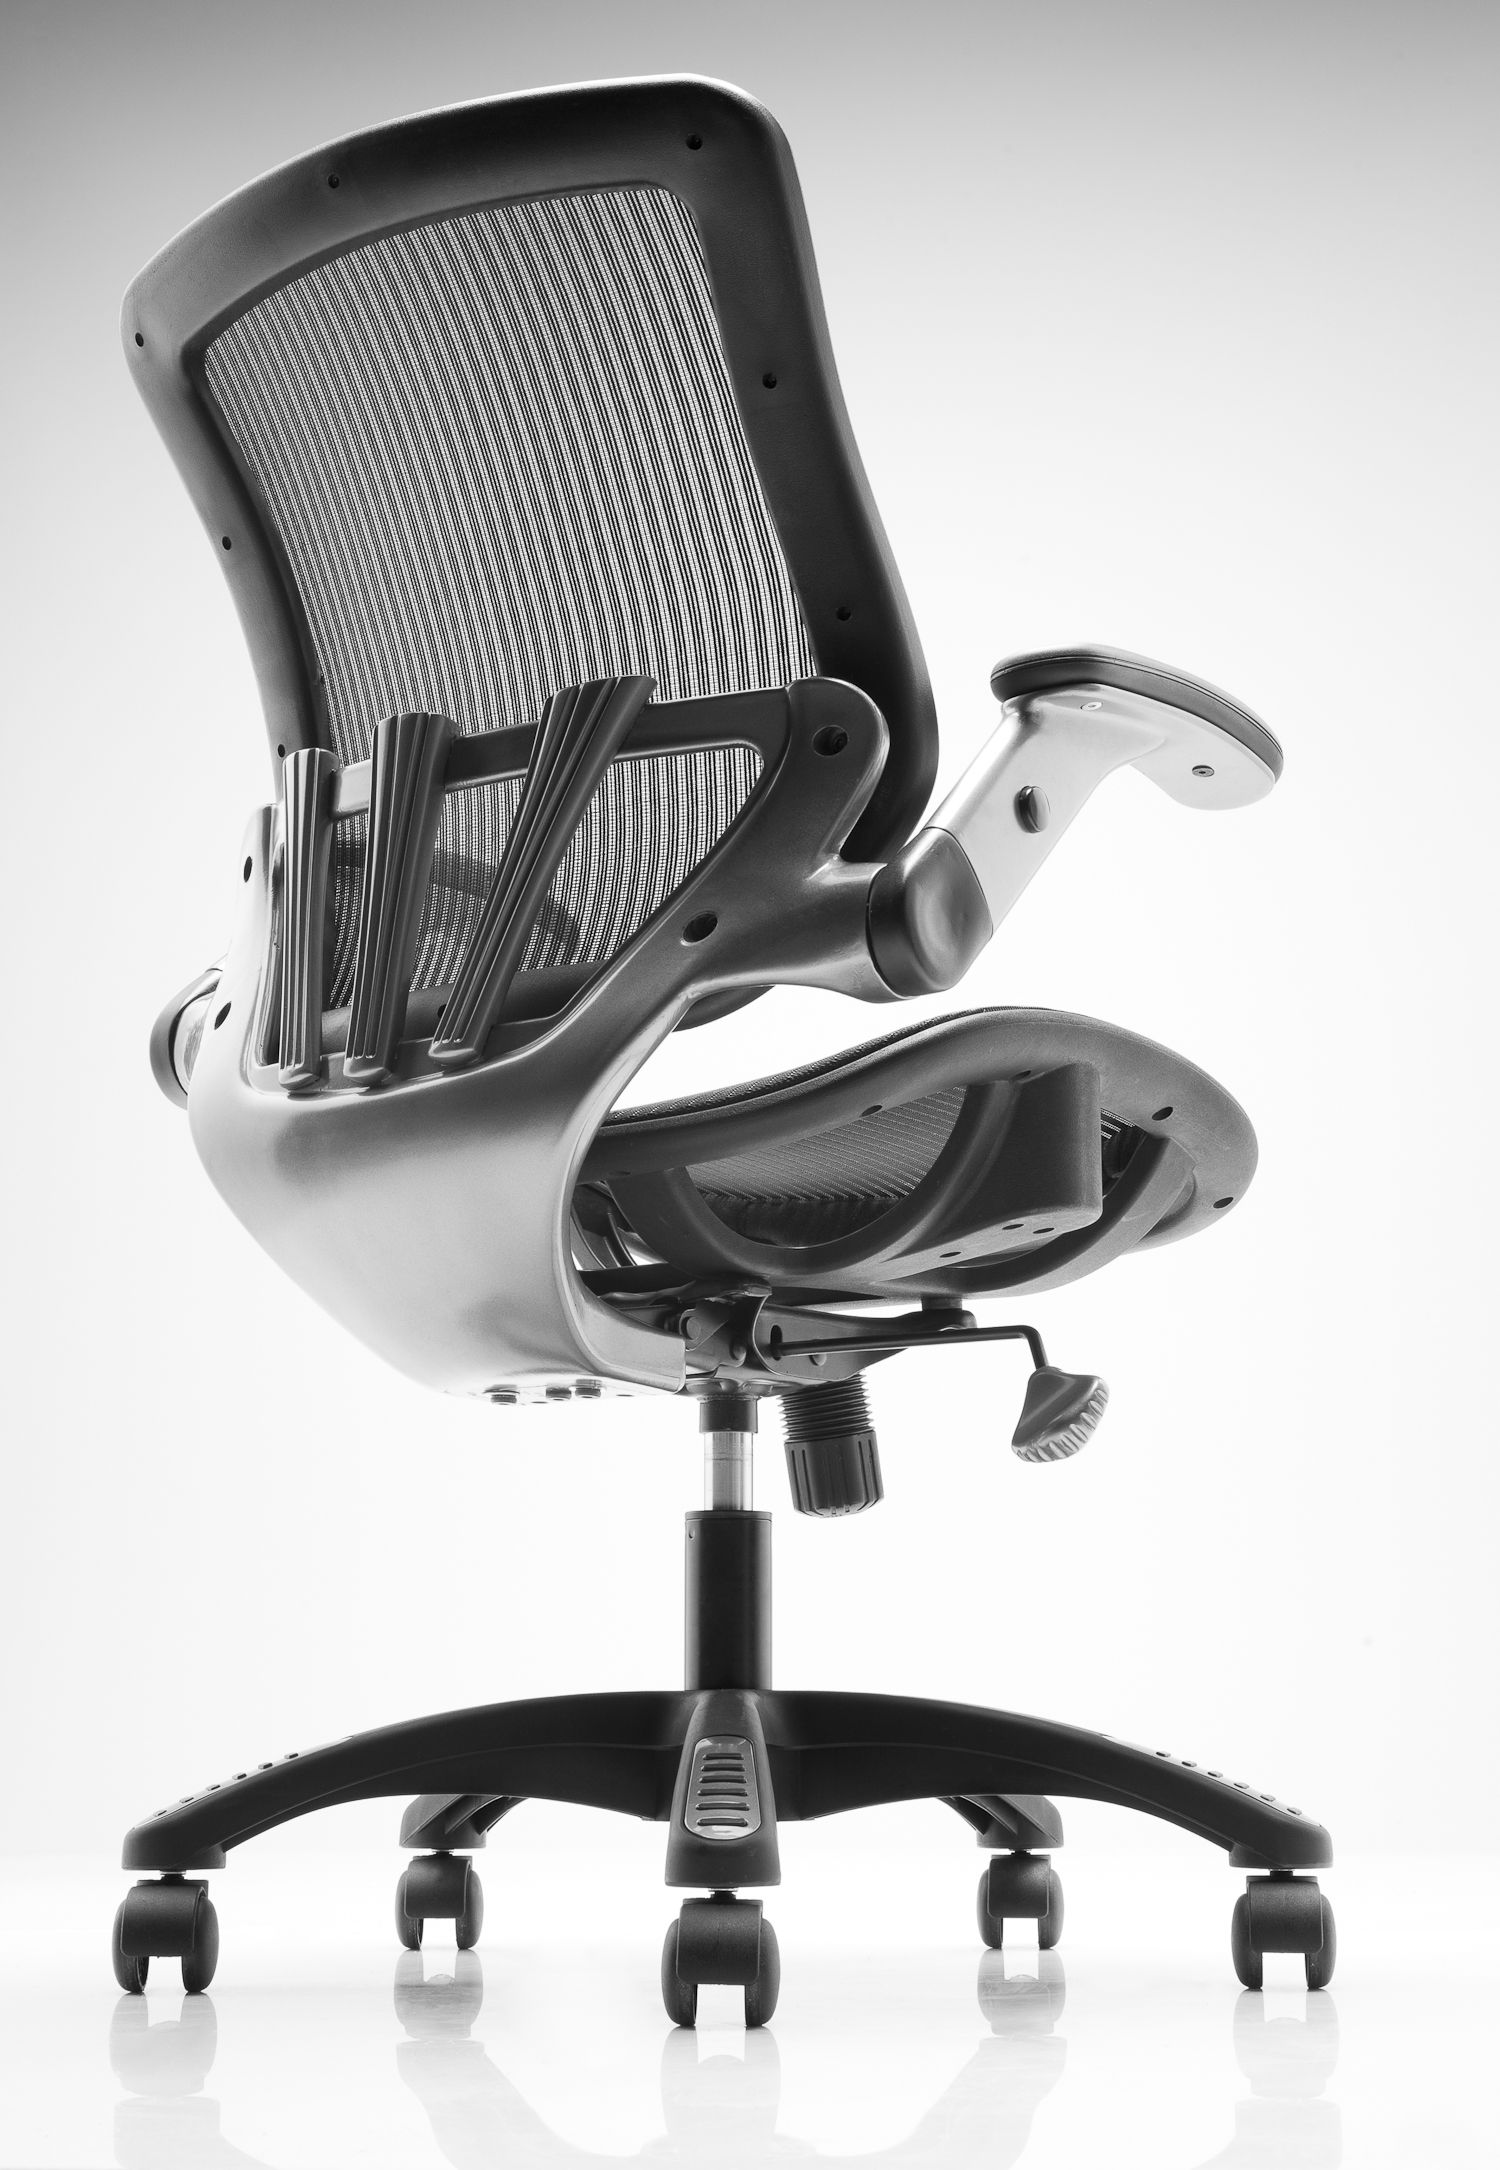 Hazz Design Costco Mesh Task Office Chair  only 99 at